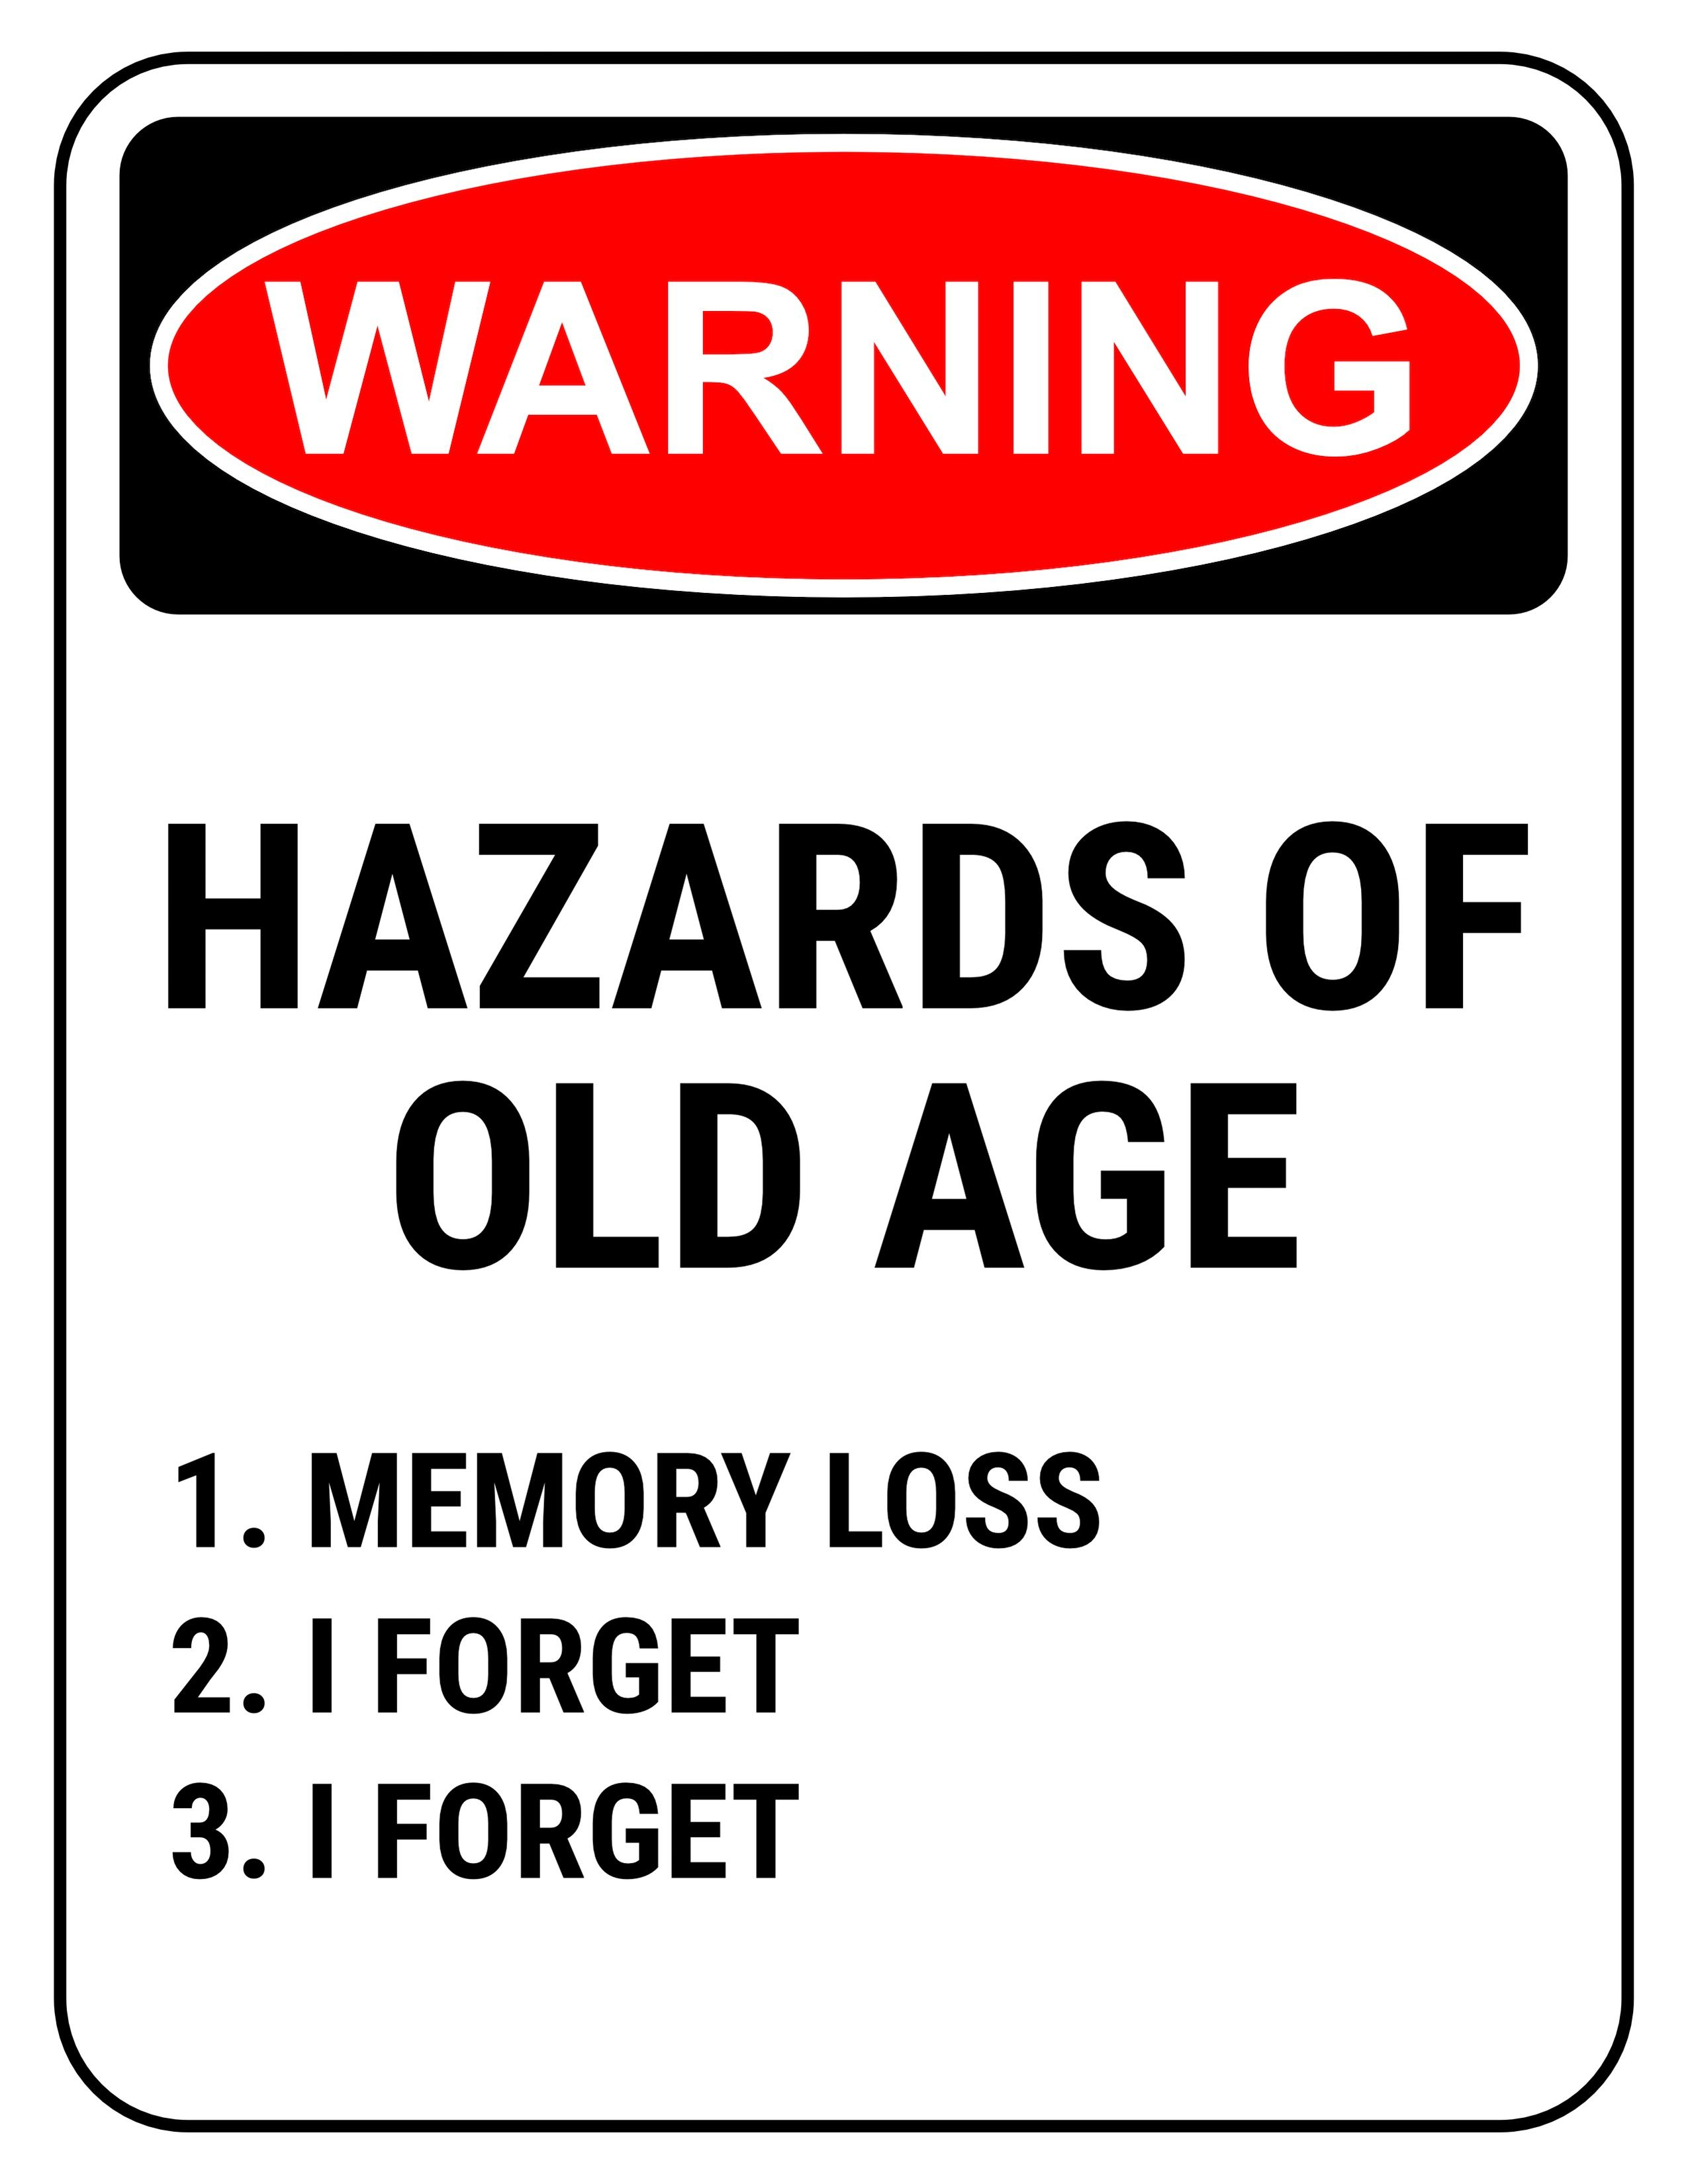 Funny Safety Sign Warning Hazards Of Old Age 50th Birthday Gifts 60th Ideas